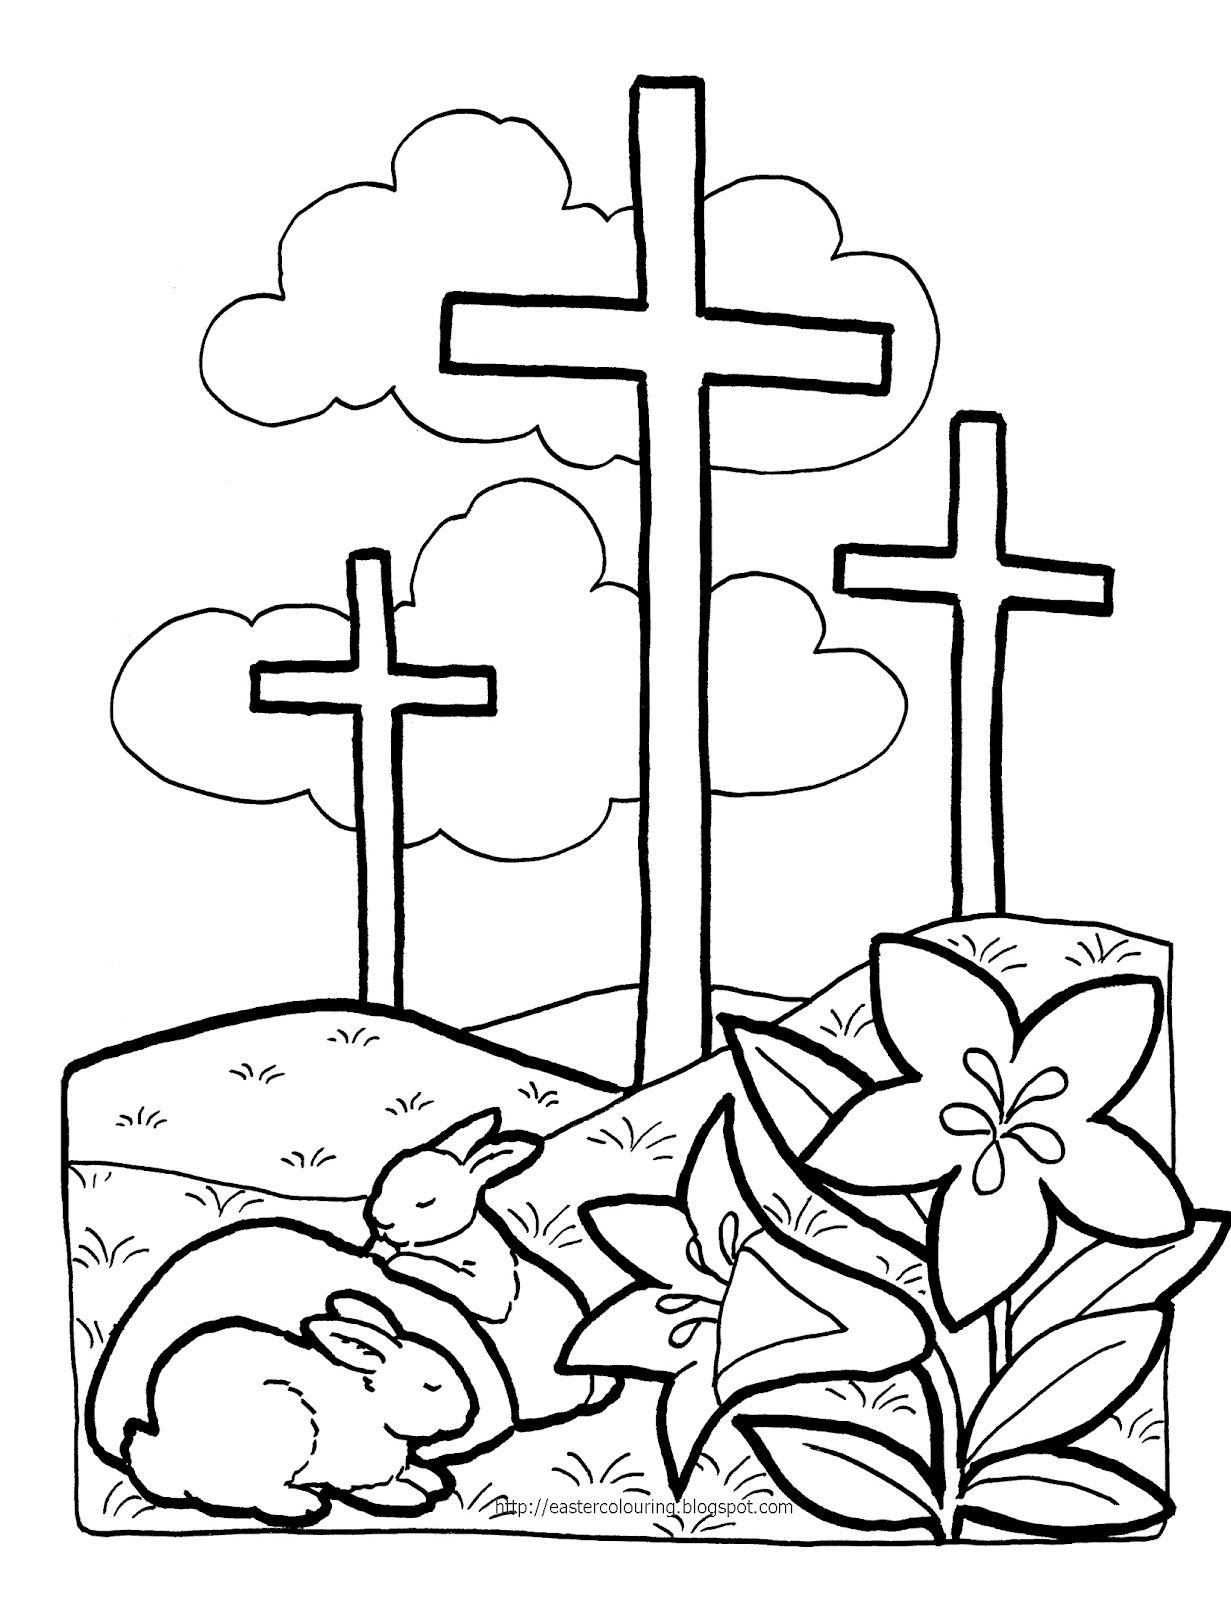 free letters from the easter bunny and easter coloring pages in pdf format description from - Resurrection Coloring Pages Print